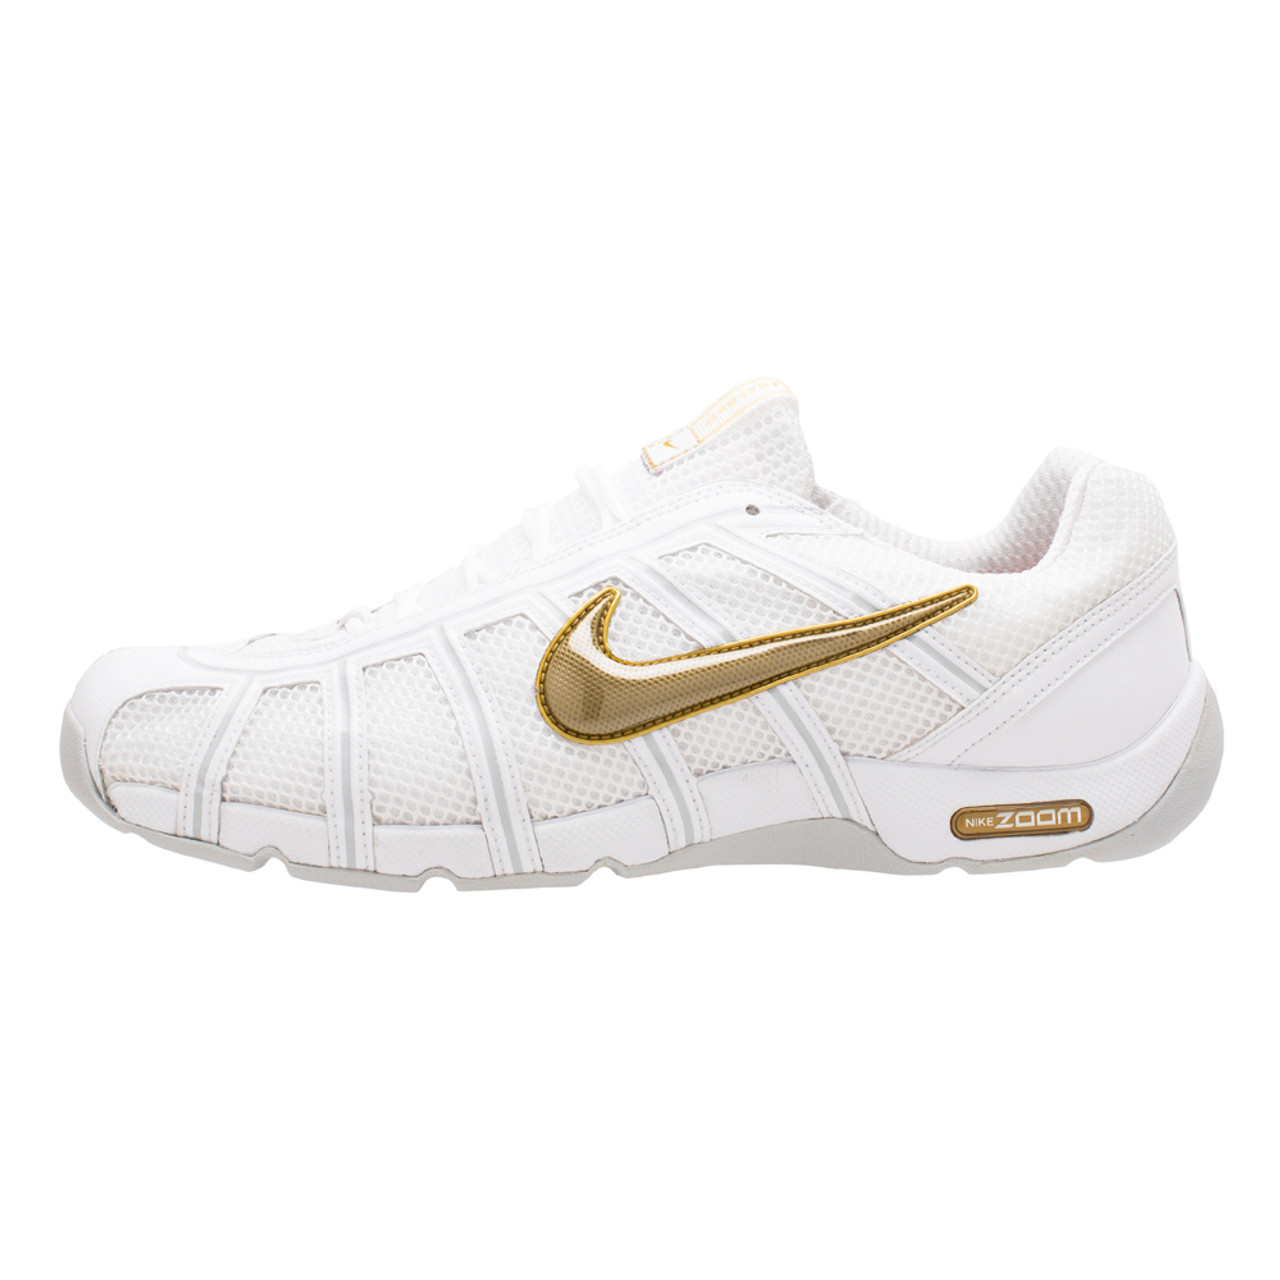 Nike Air Zoom Fencer Limited Edition WhiteMetallic Gold